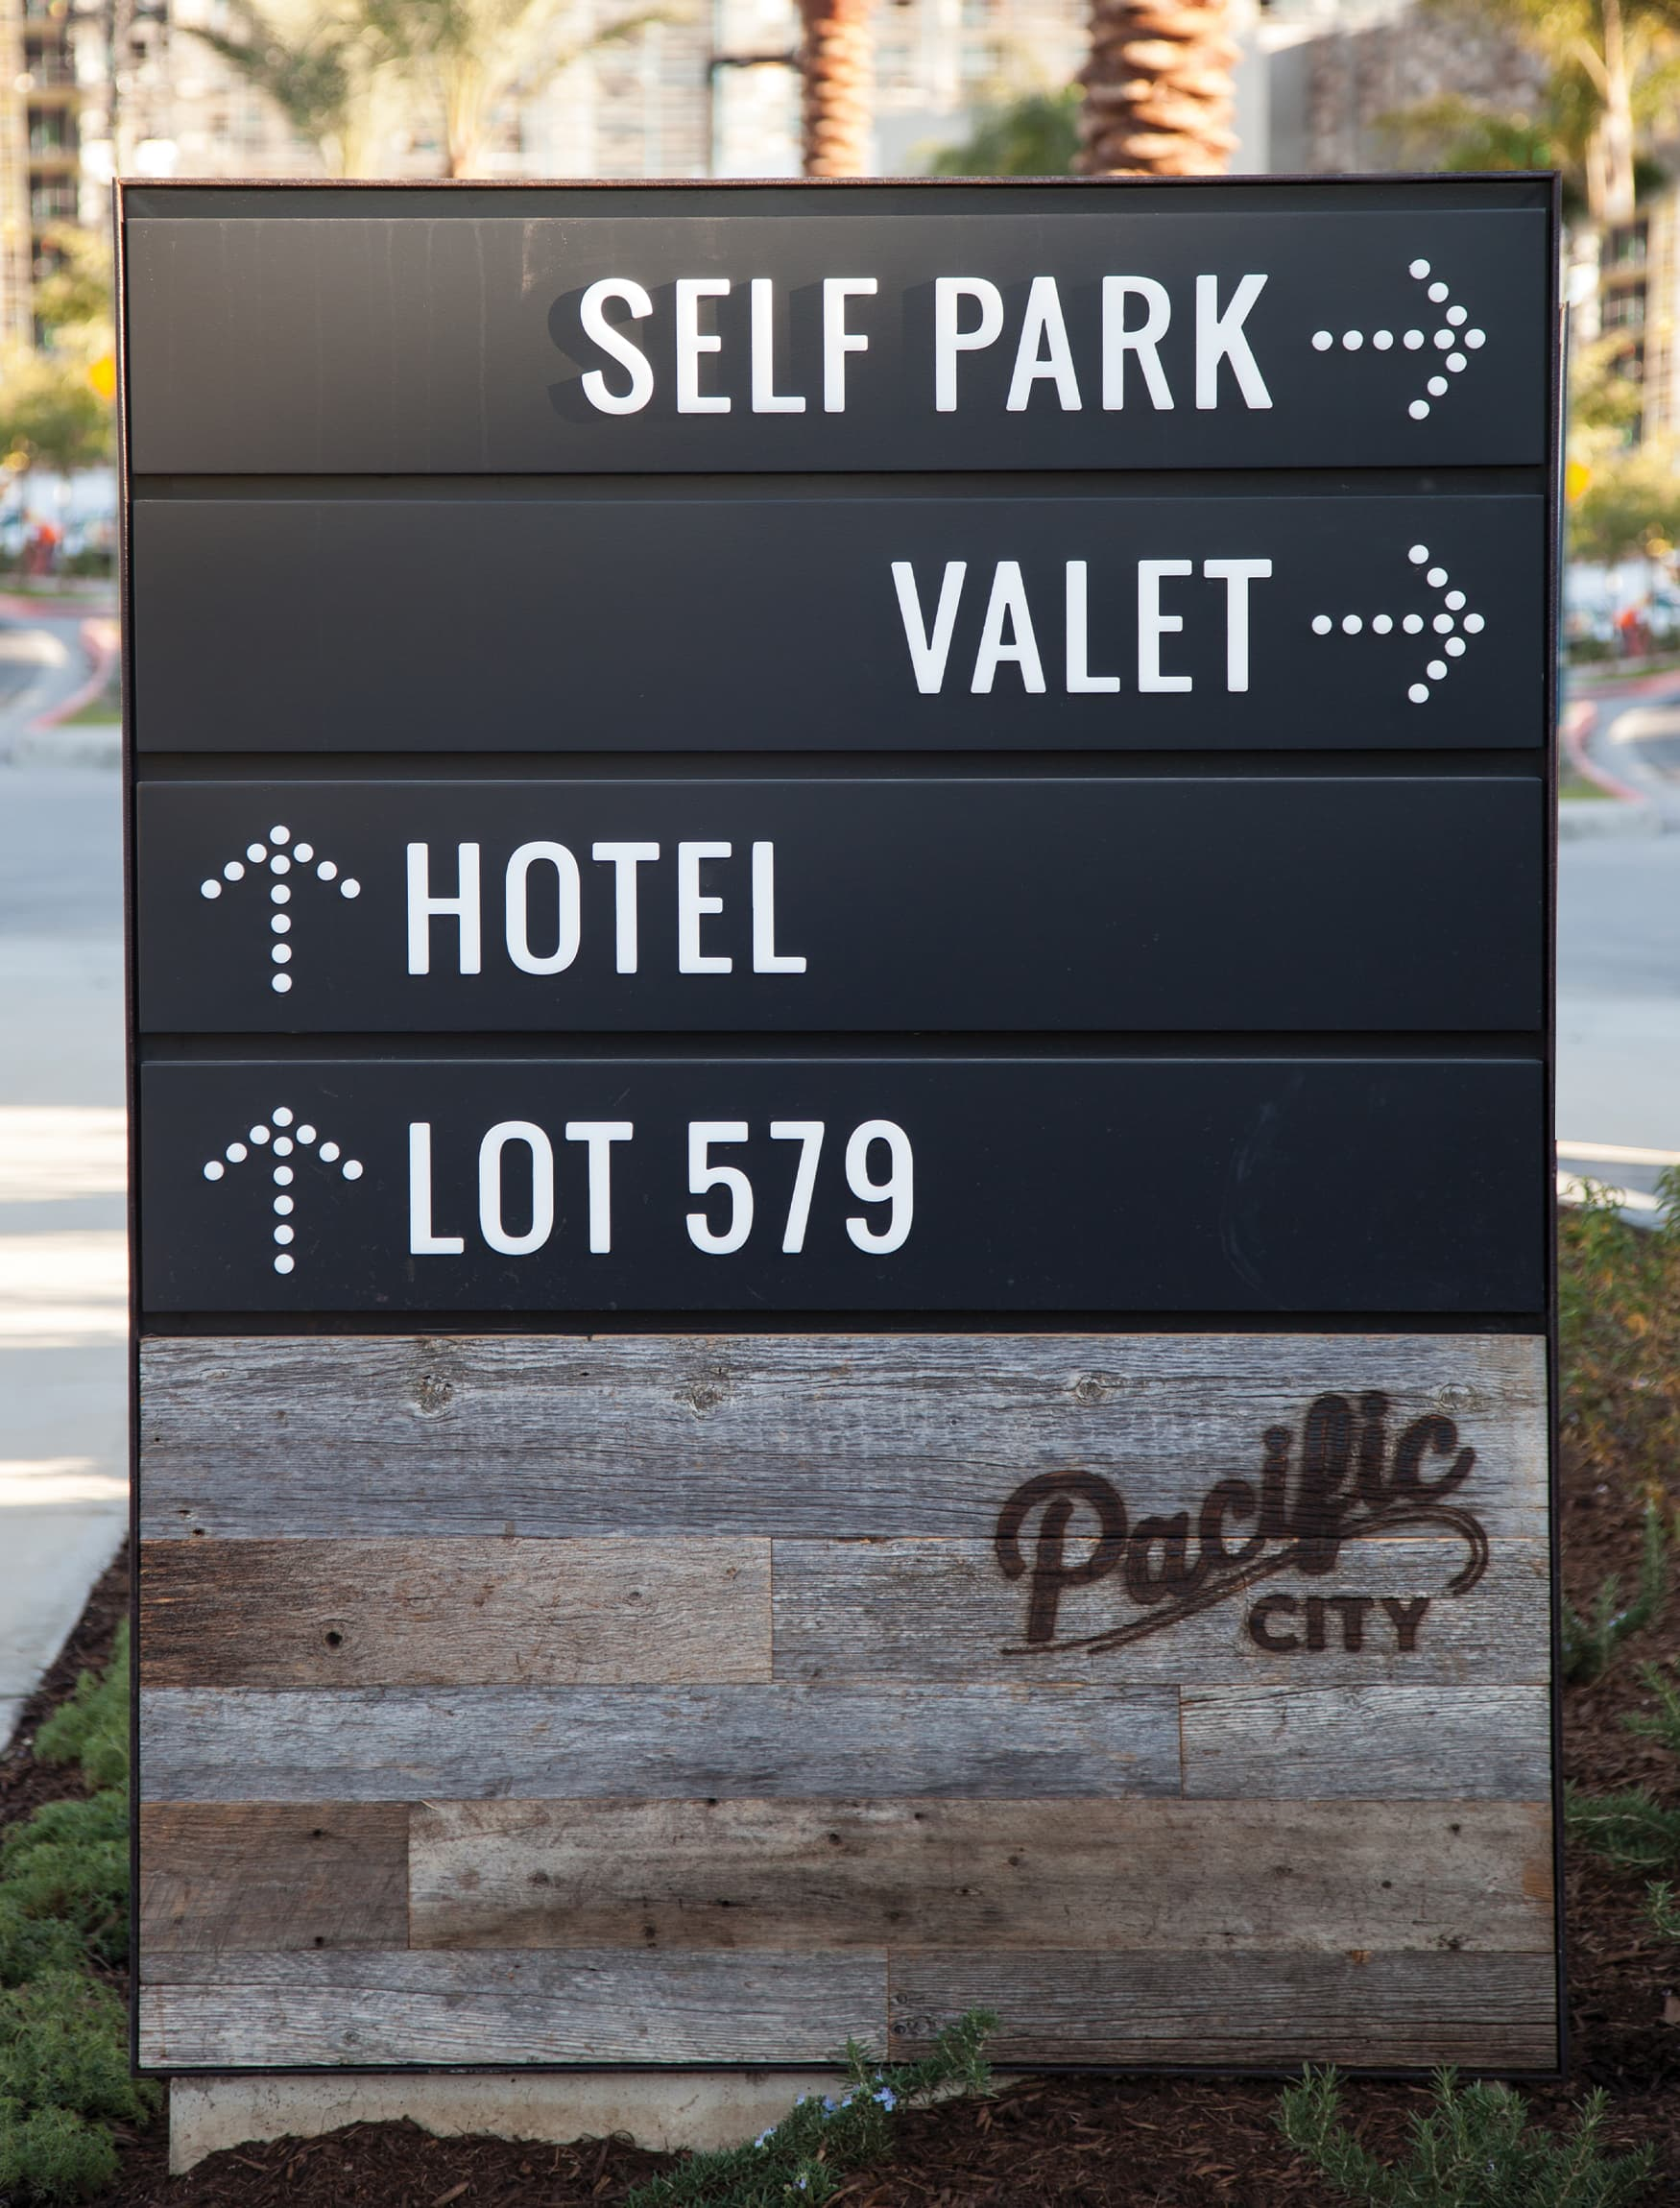 Pacific City waterfront retail project vehicular wayfinding system design